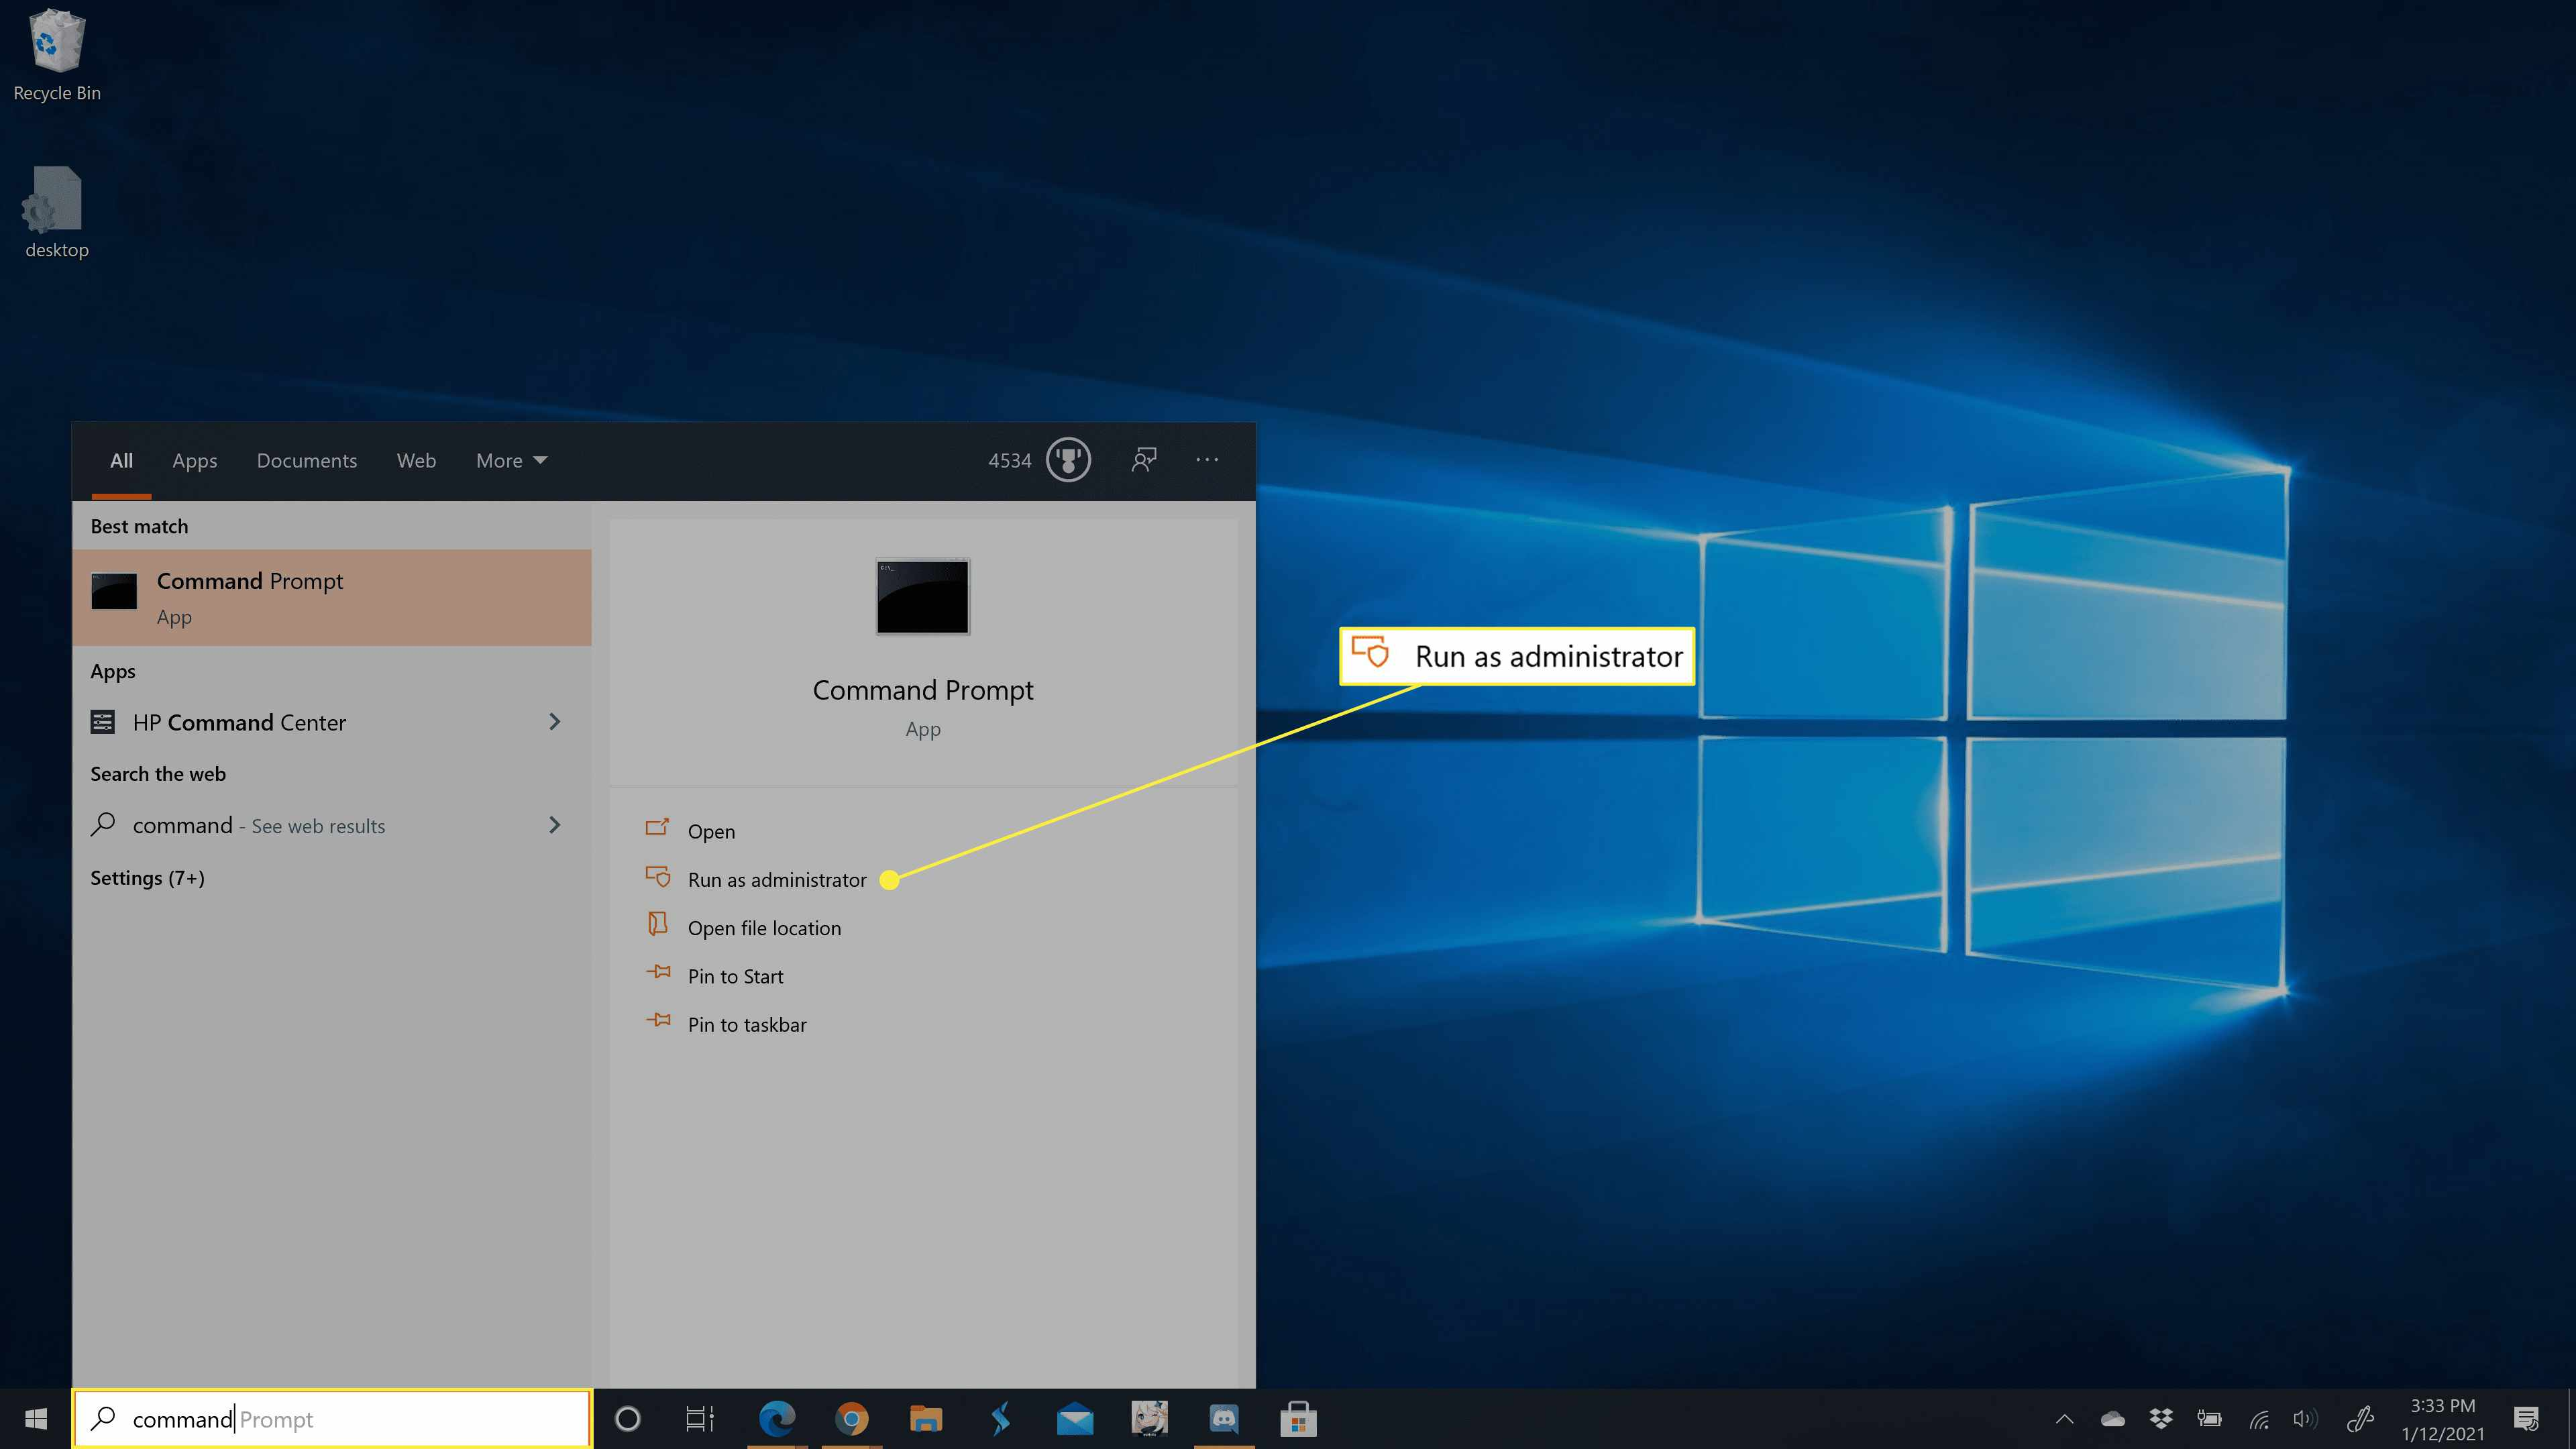 Launching the Command Prompt in Windows 10.